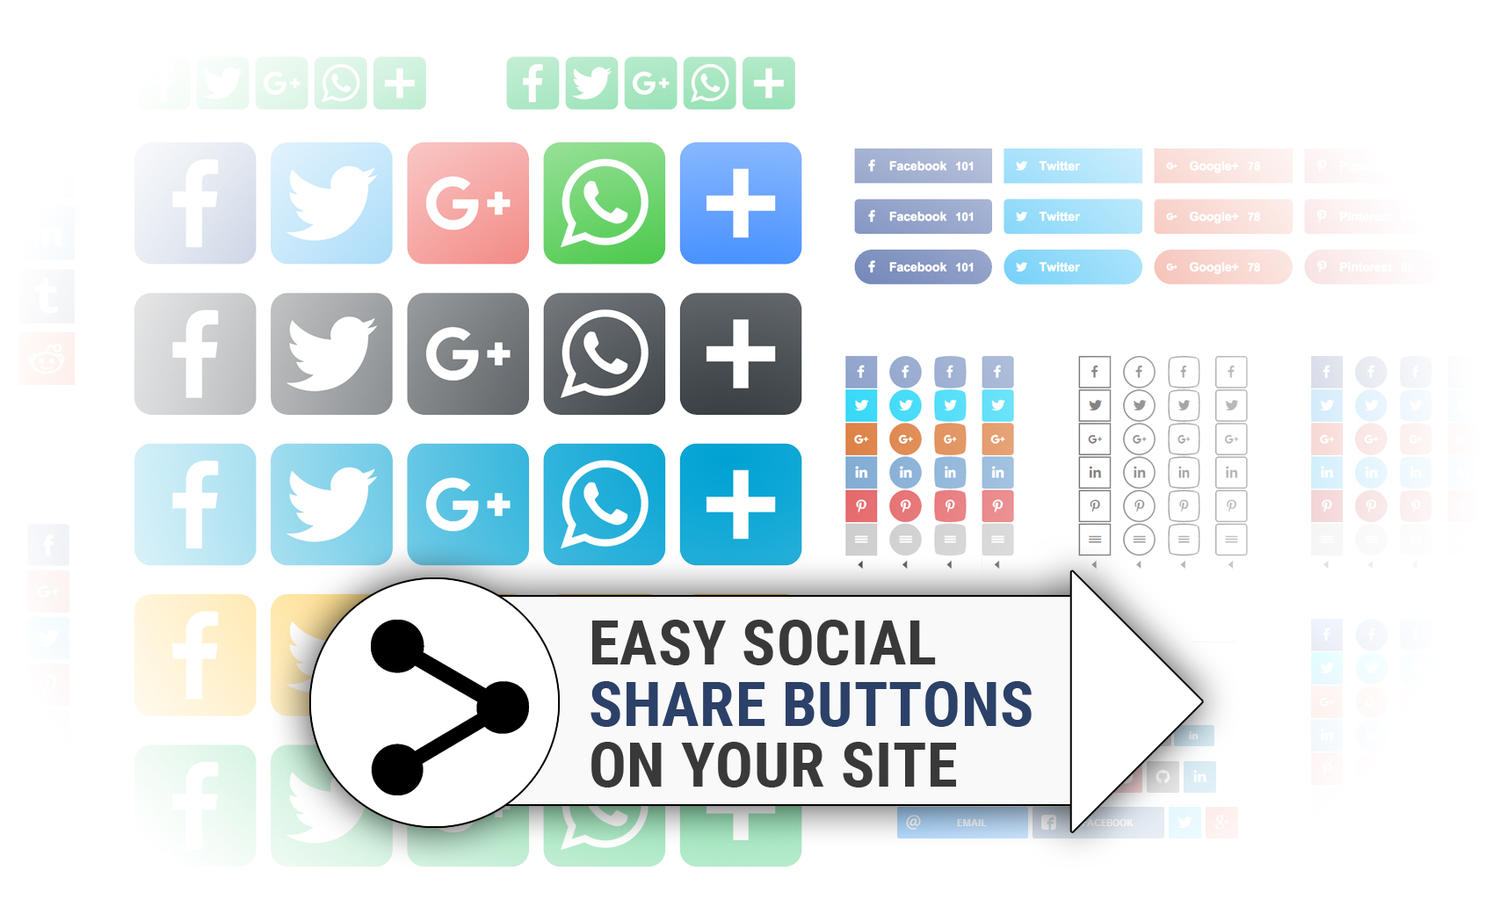 Easy Social Share Buttons Setup on your Site by madridnyc - 110933